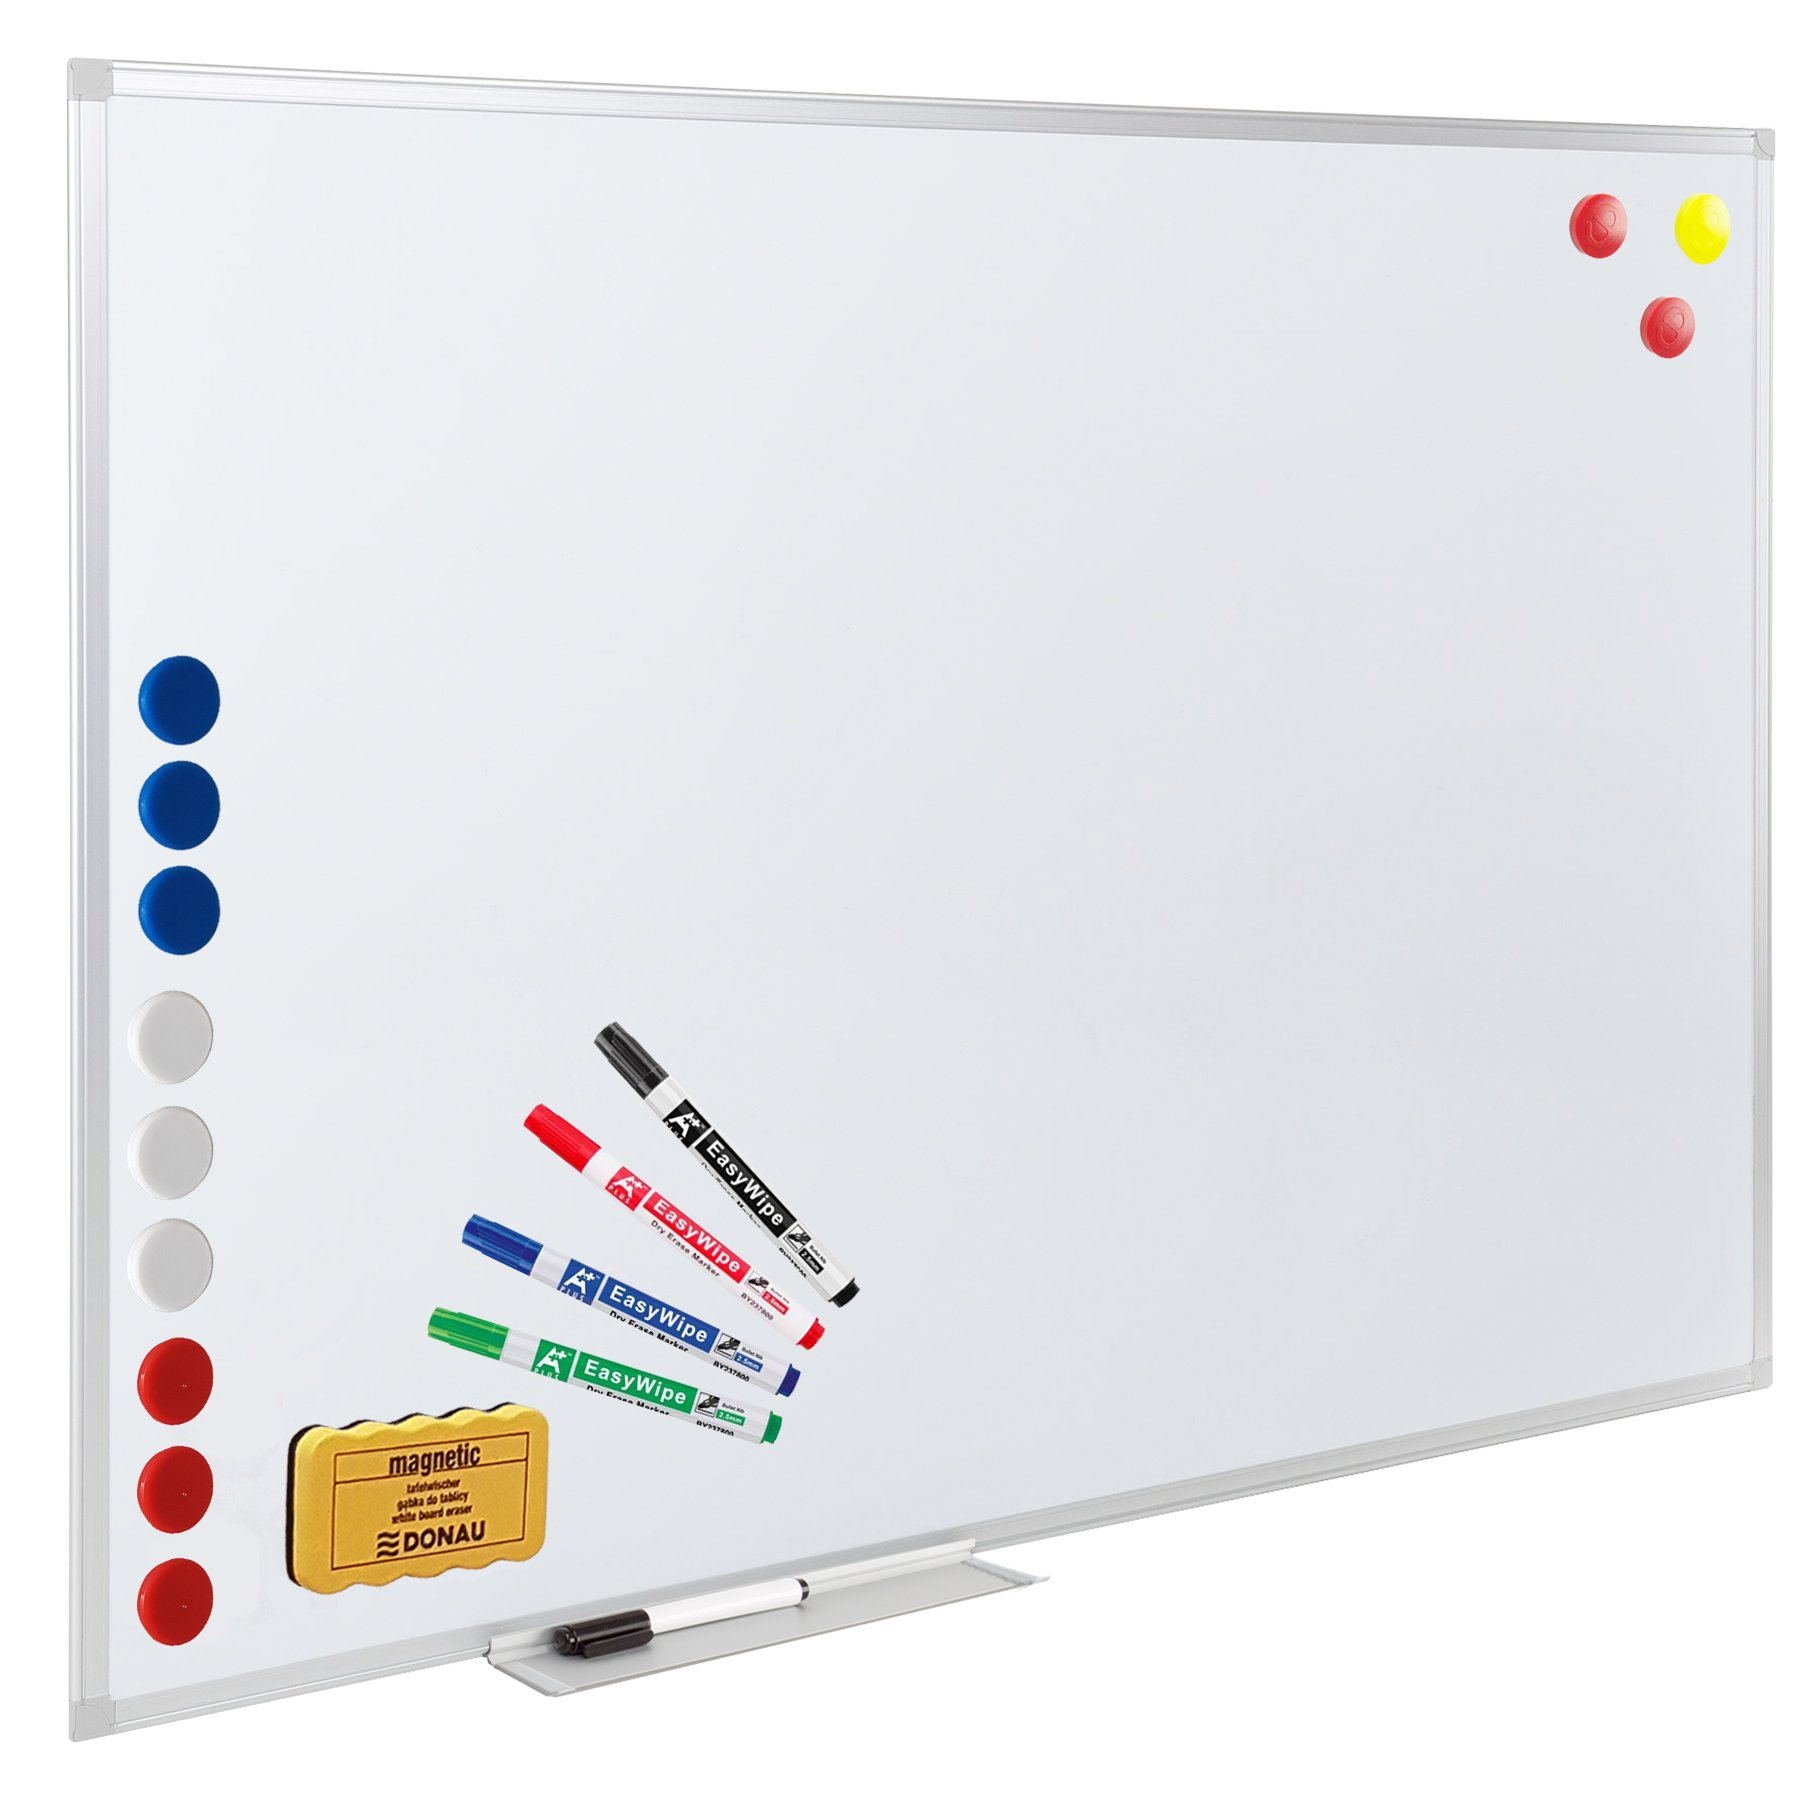 Item WHITE magnetic BOARD with backlight 100x80 cm